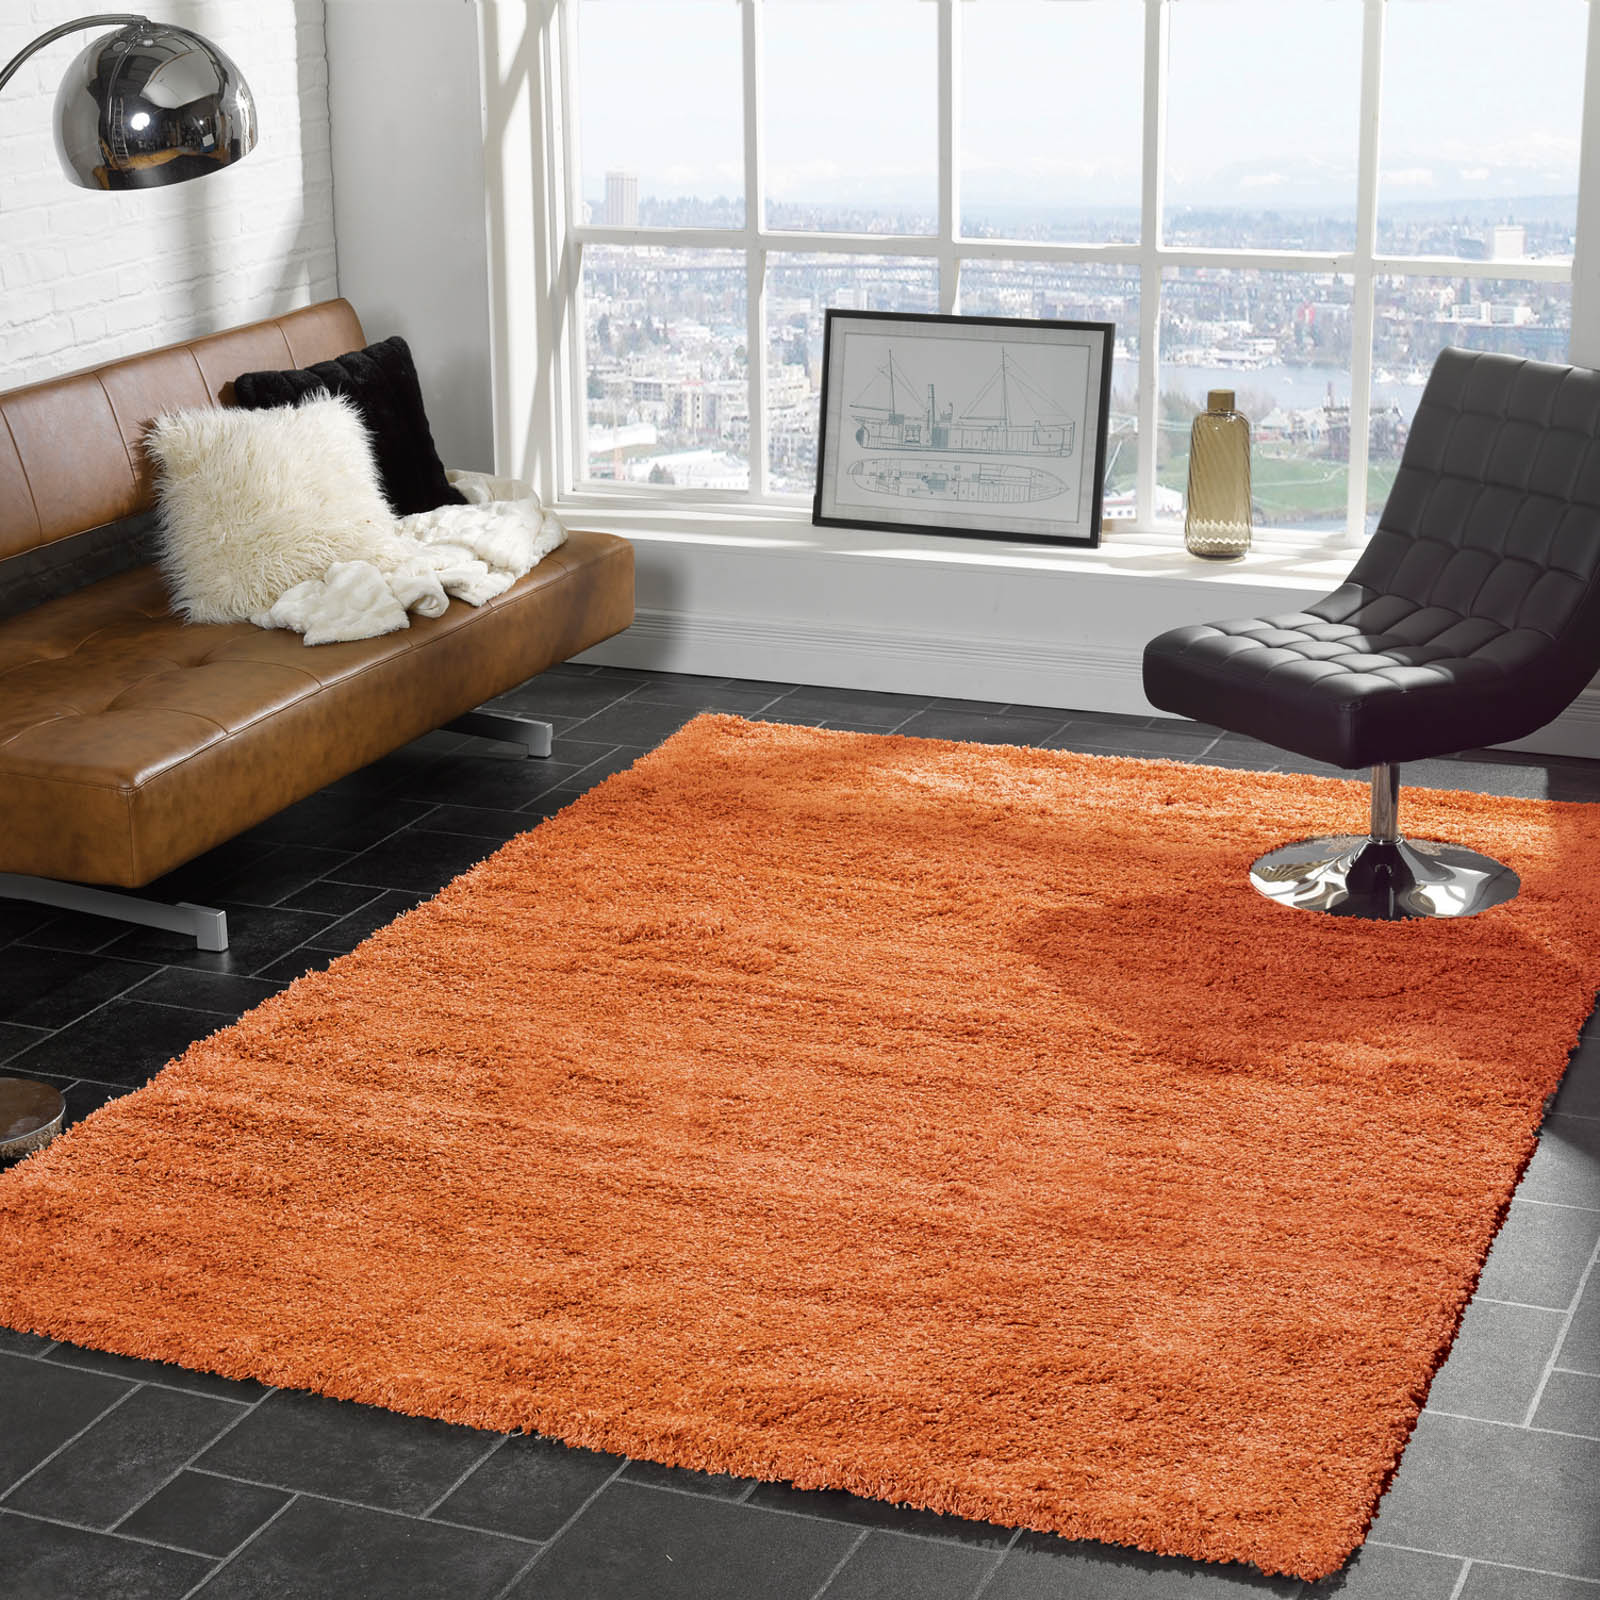 stop rugs slipping on your floor